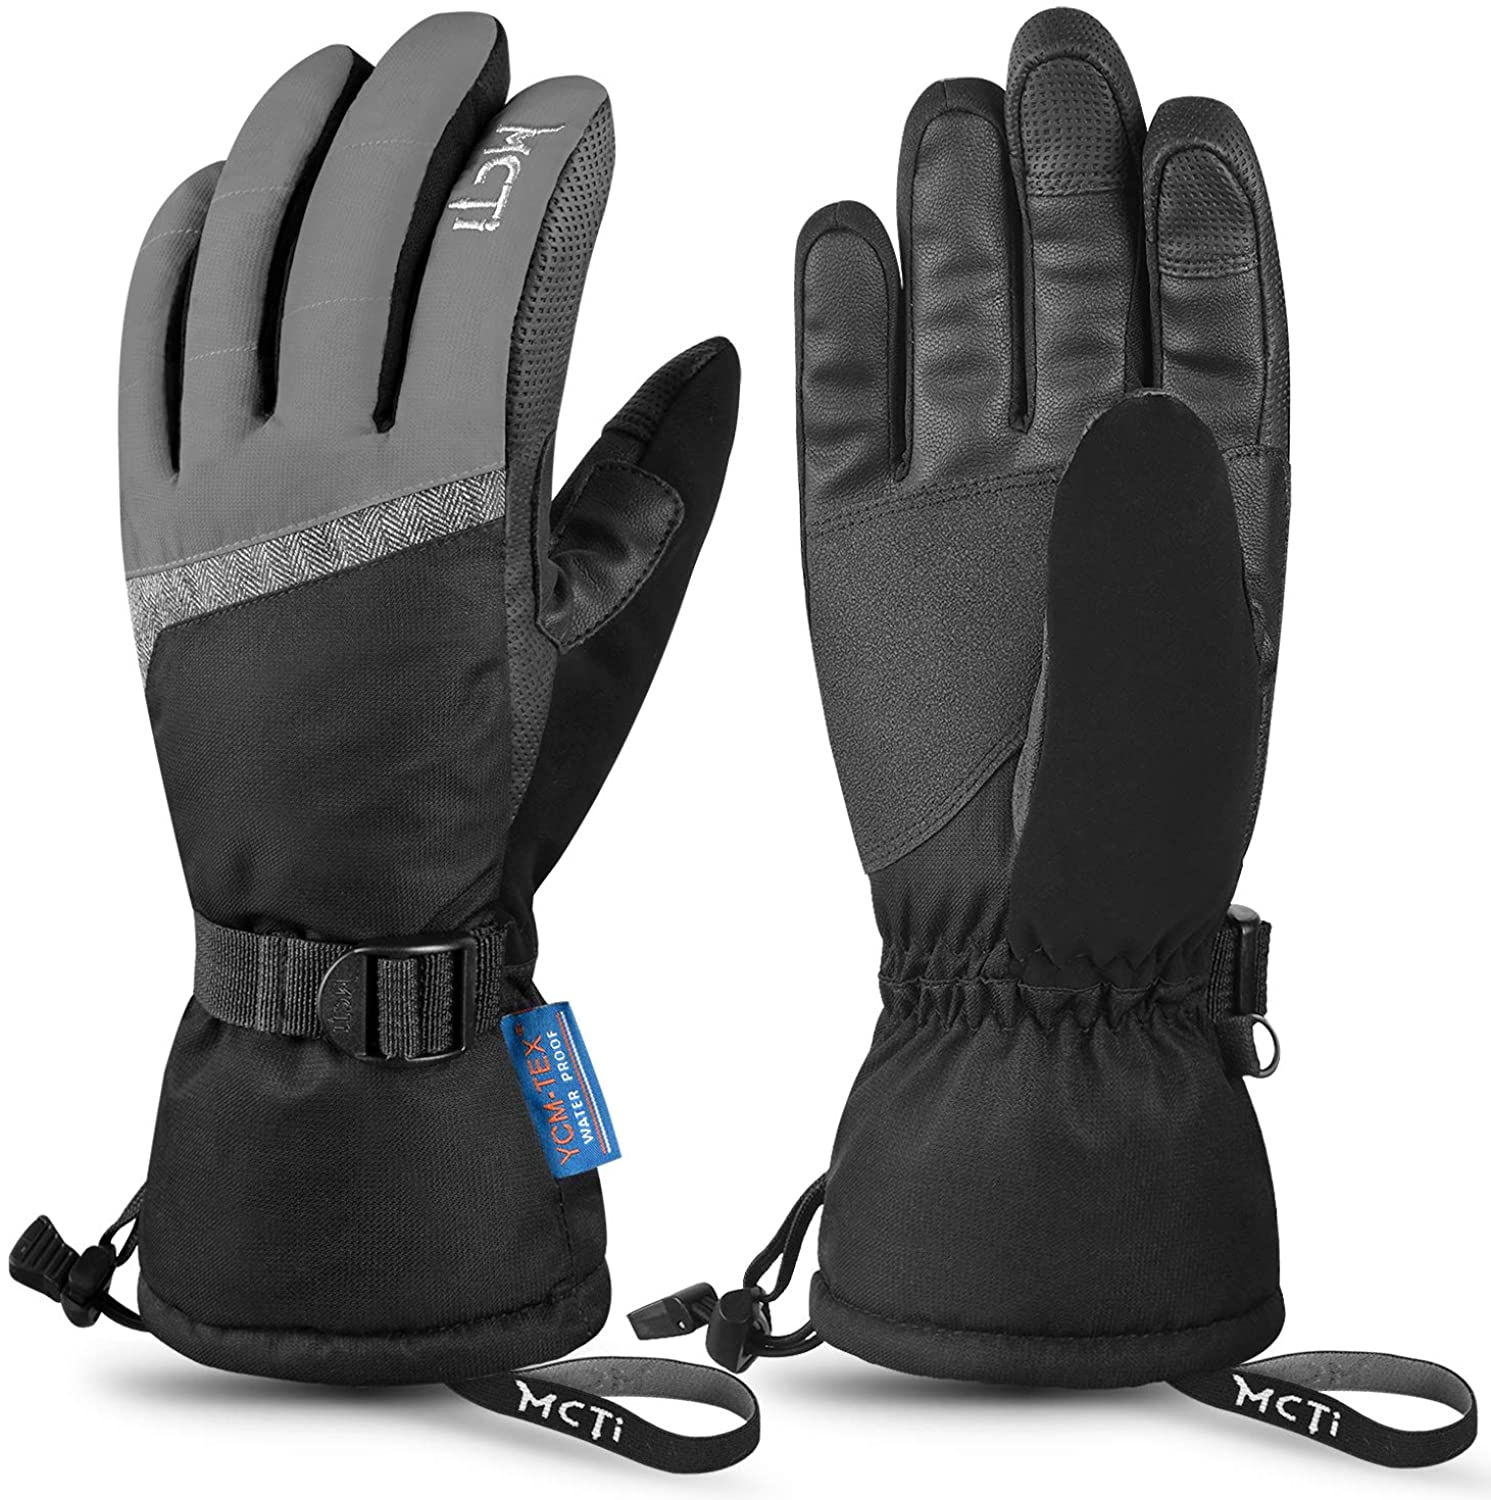 30℃ Winter Ski Gloves Thermal Snowboard Snow Skiing Touchscreen Mens Womens